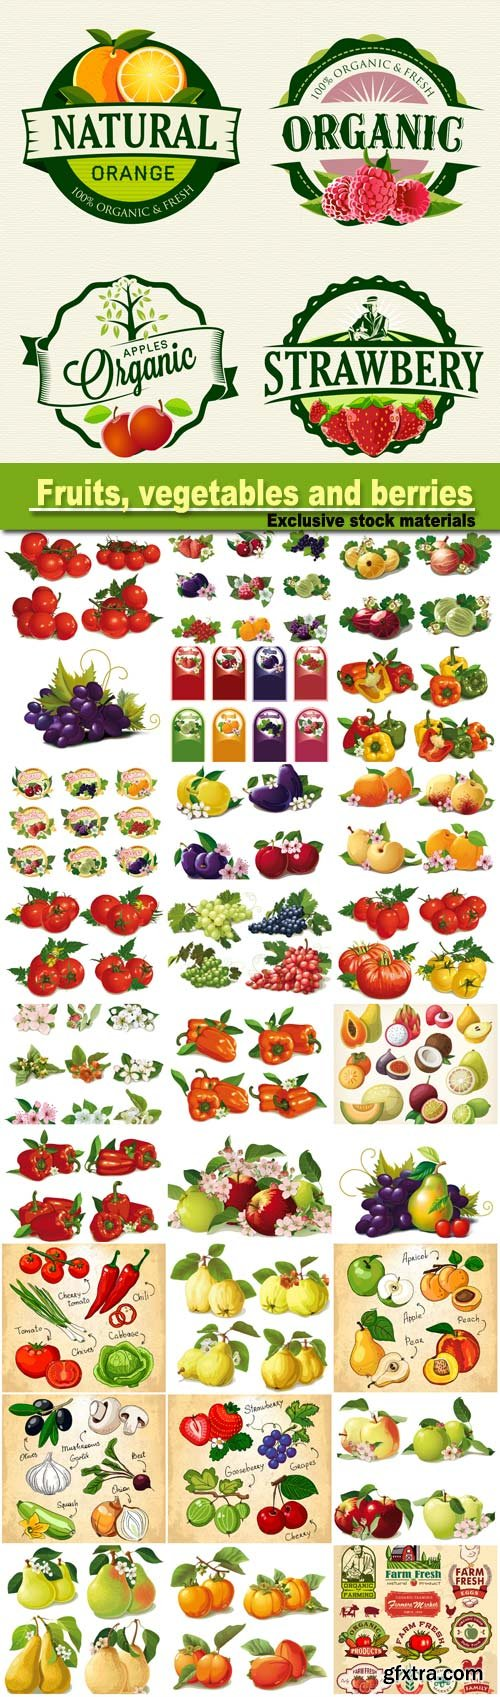 Set of fruits, vegetables and berries vector